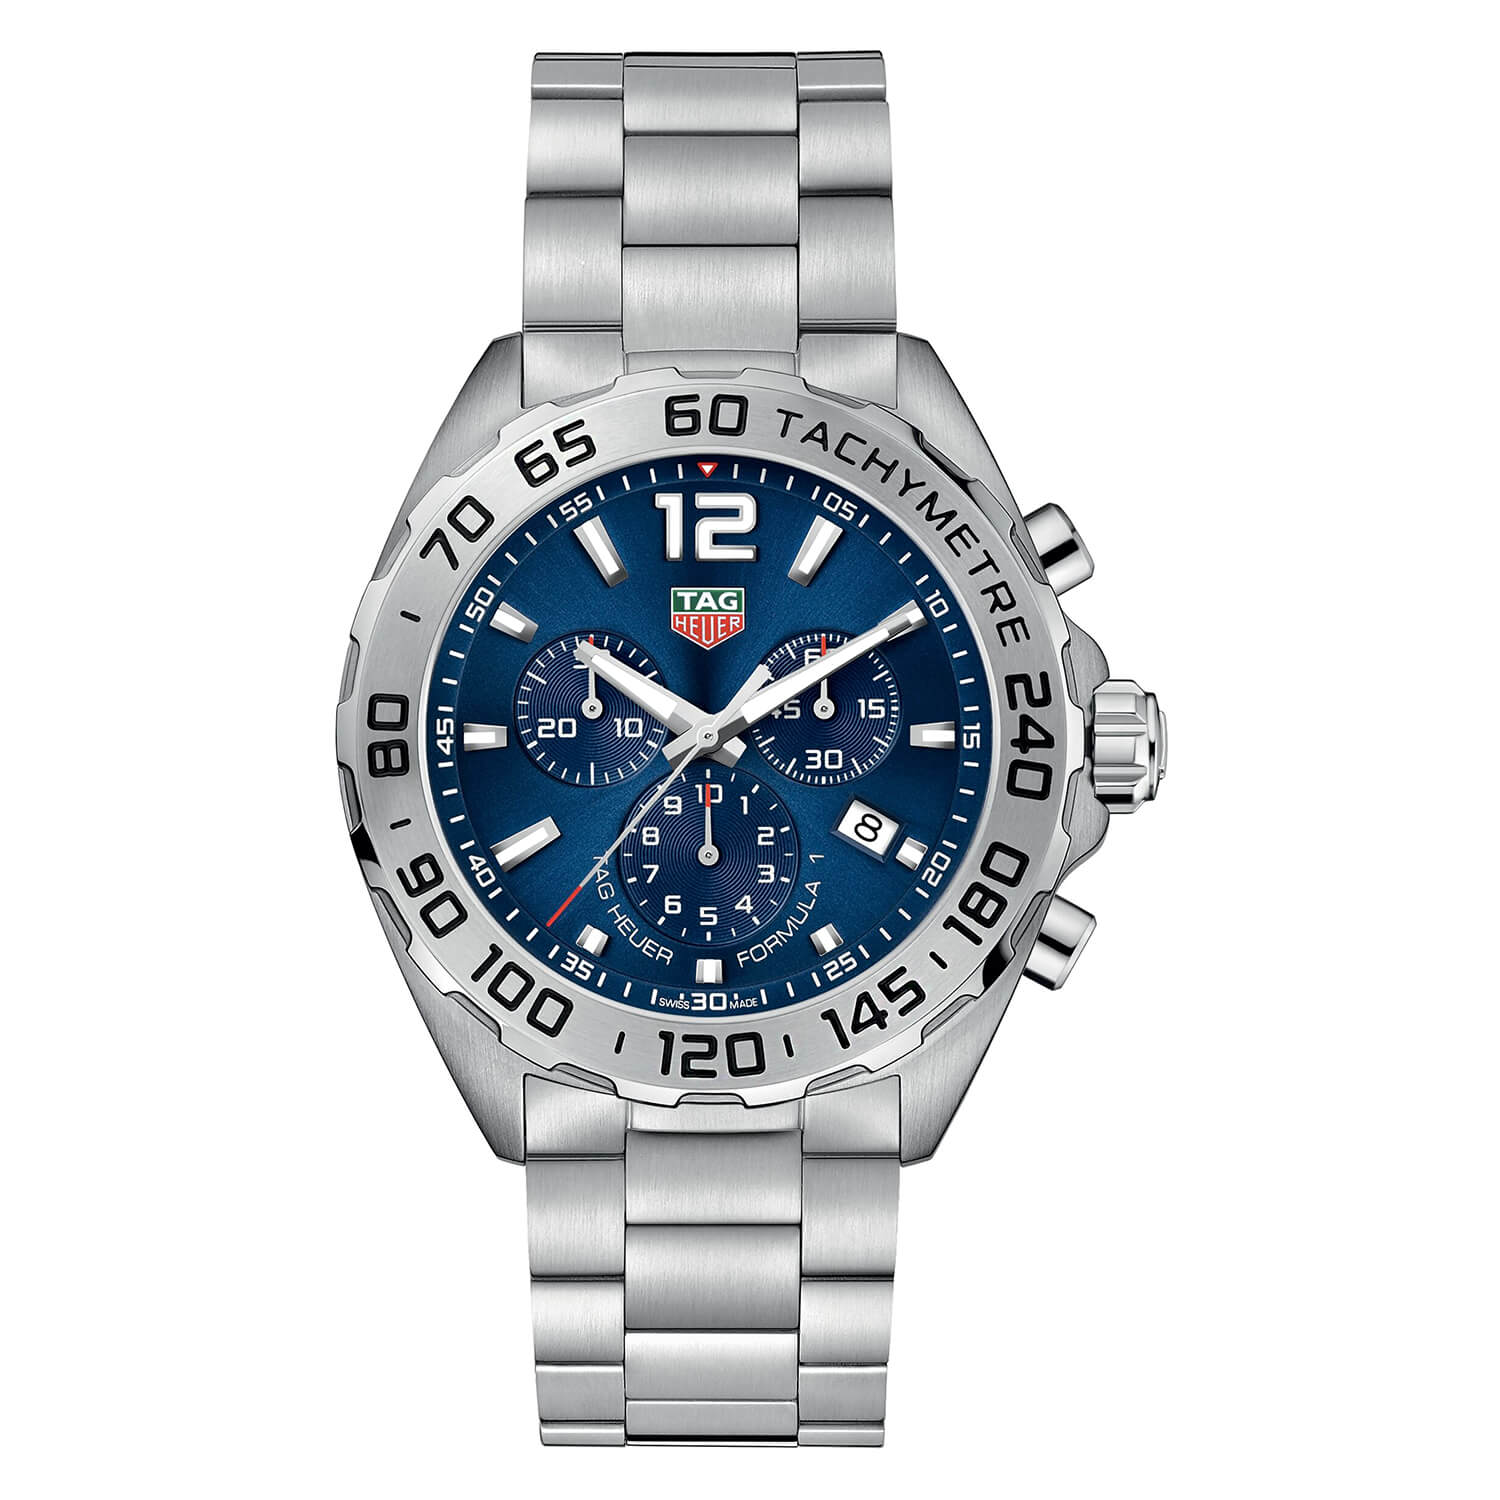 TAG Heuer F1 Tachymetre Blue Dial Steel Bracelet Men's Watch